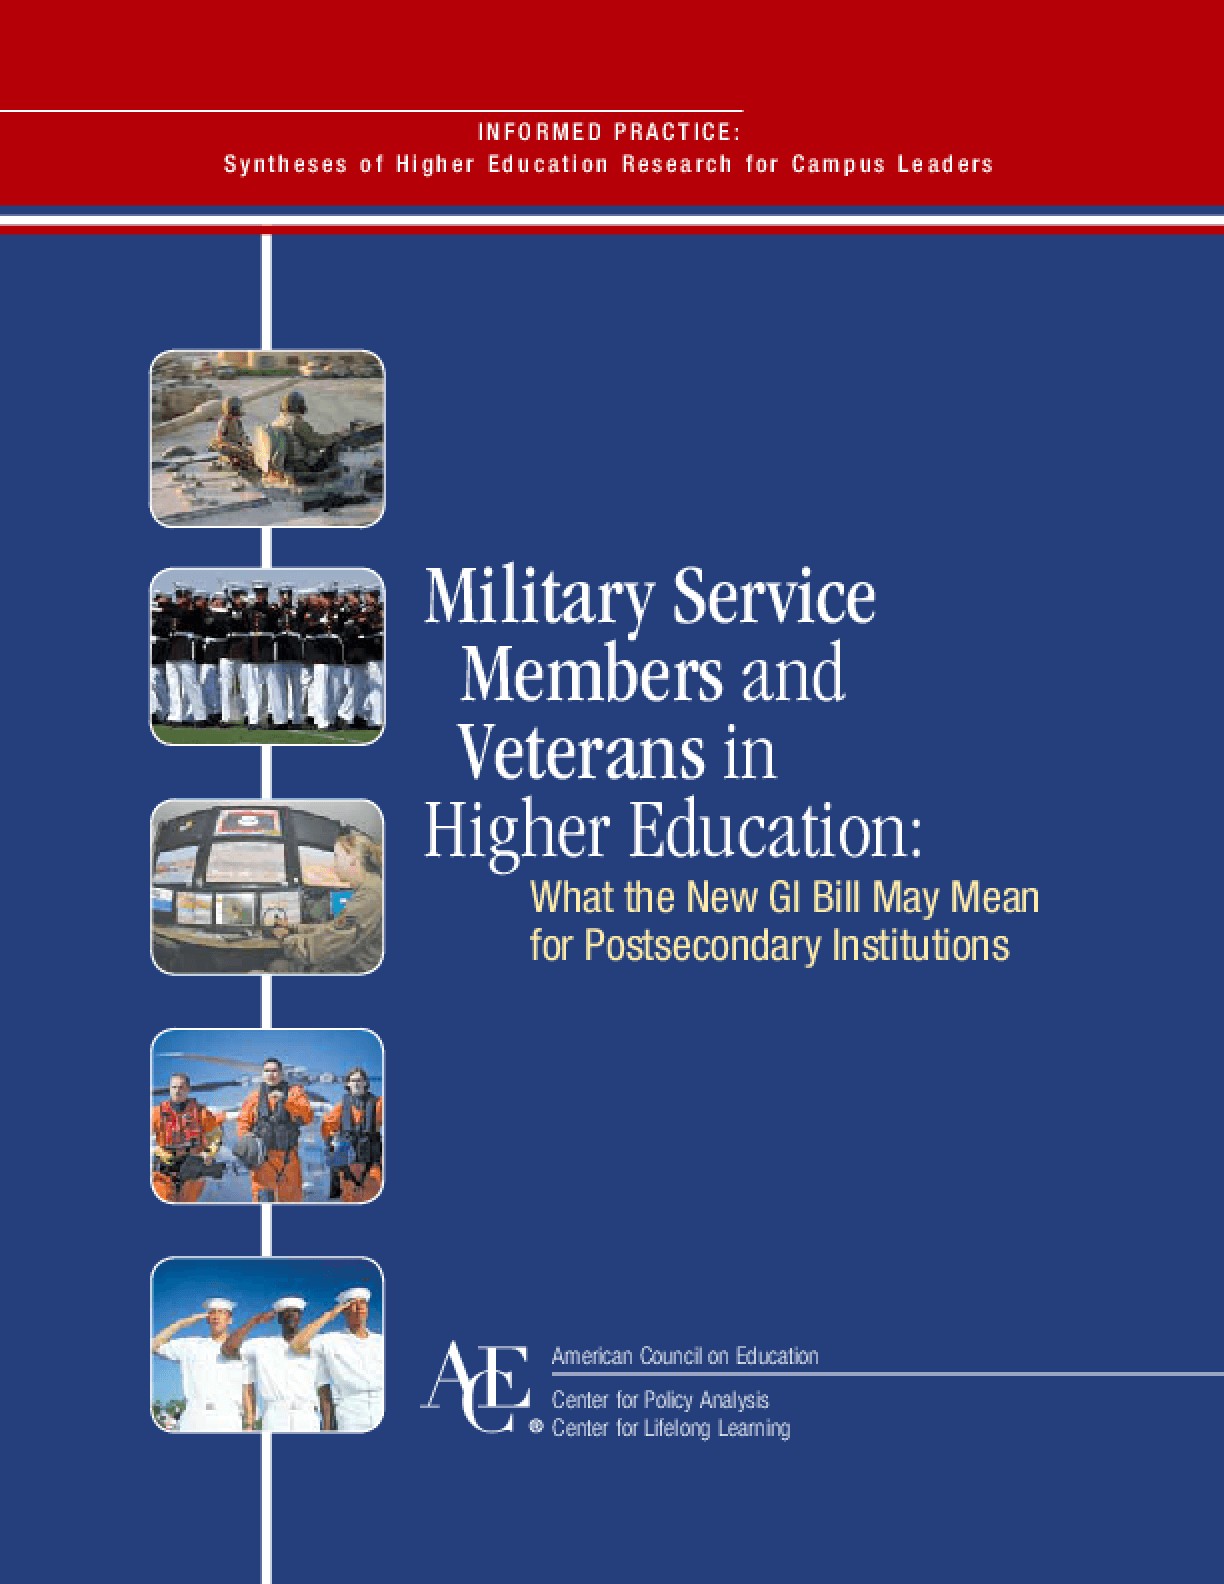 Military Service Members and Veterans in Higher Education: What the New GI Bill May Mean for Postsecondary Institutions